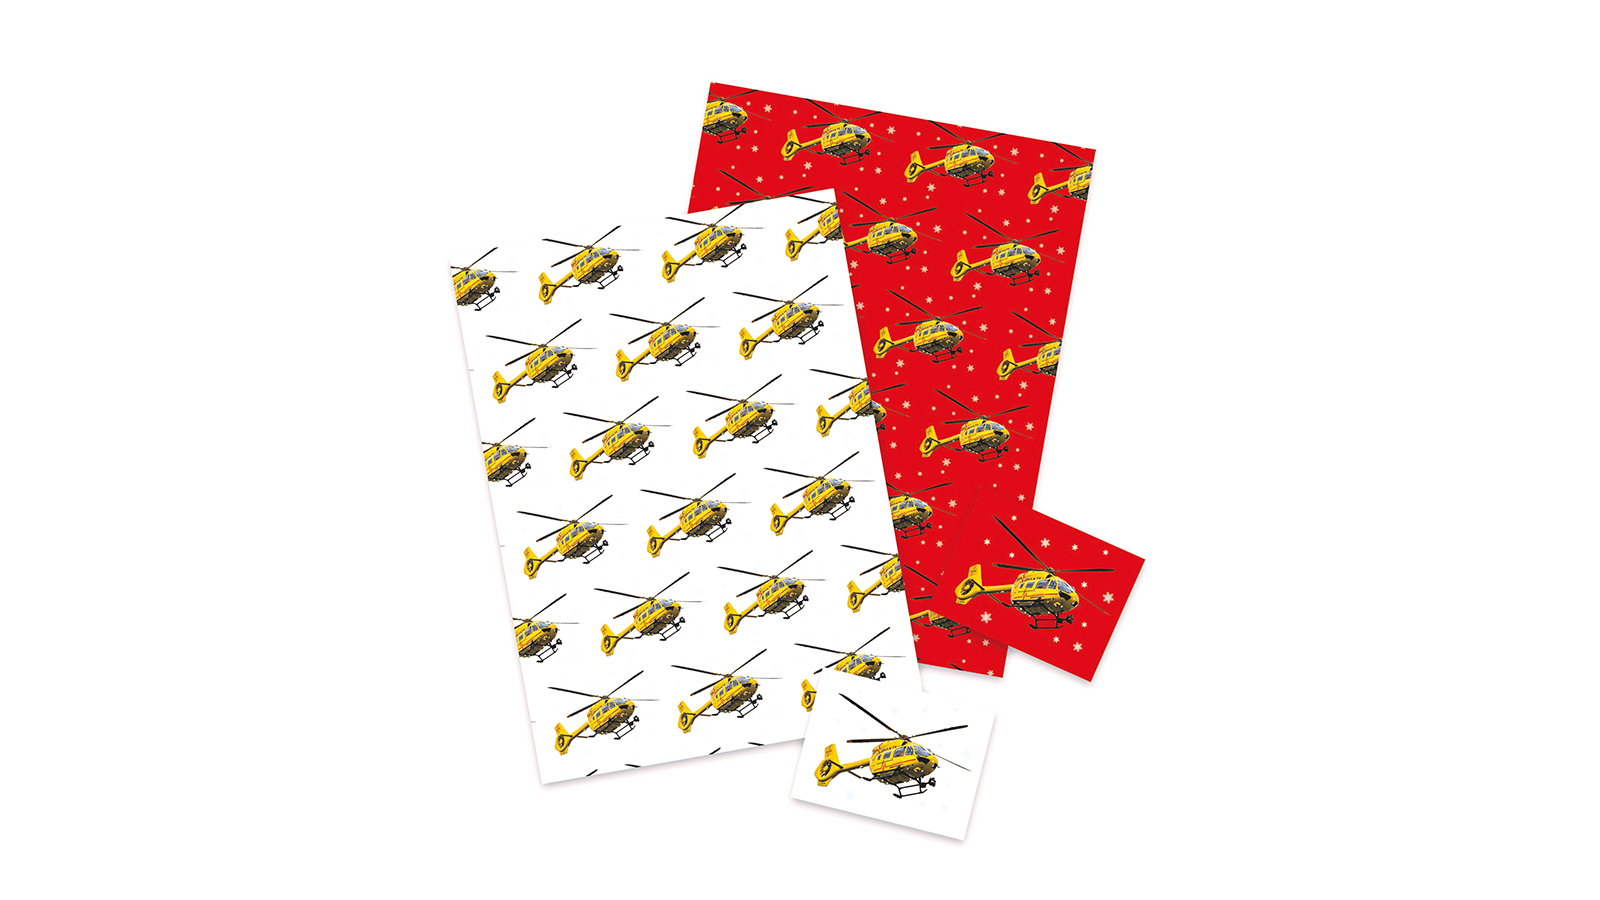 Helicopter Christmas wrapping paper